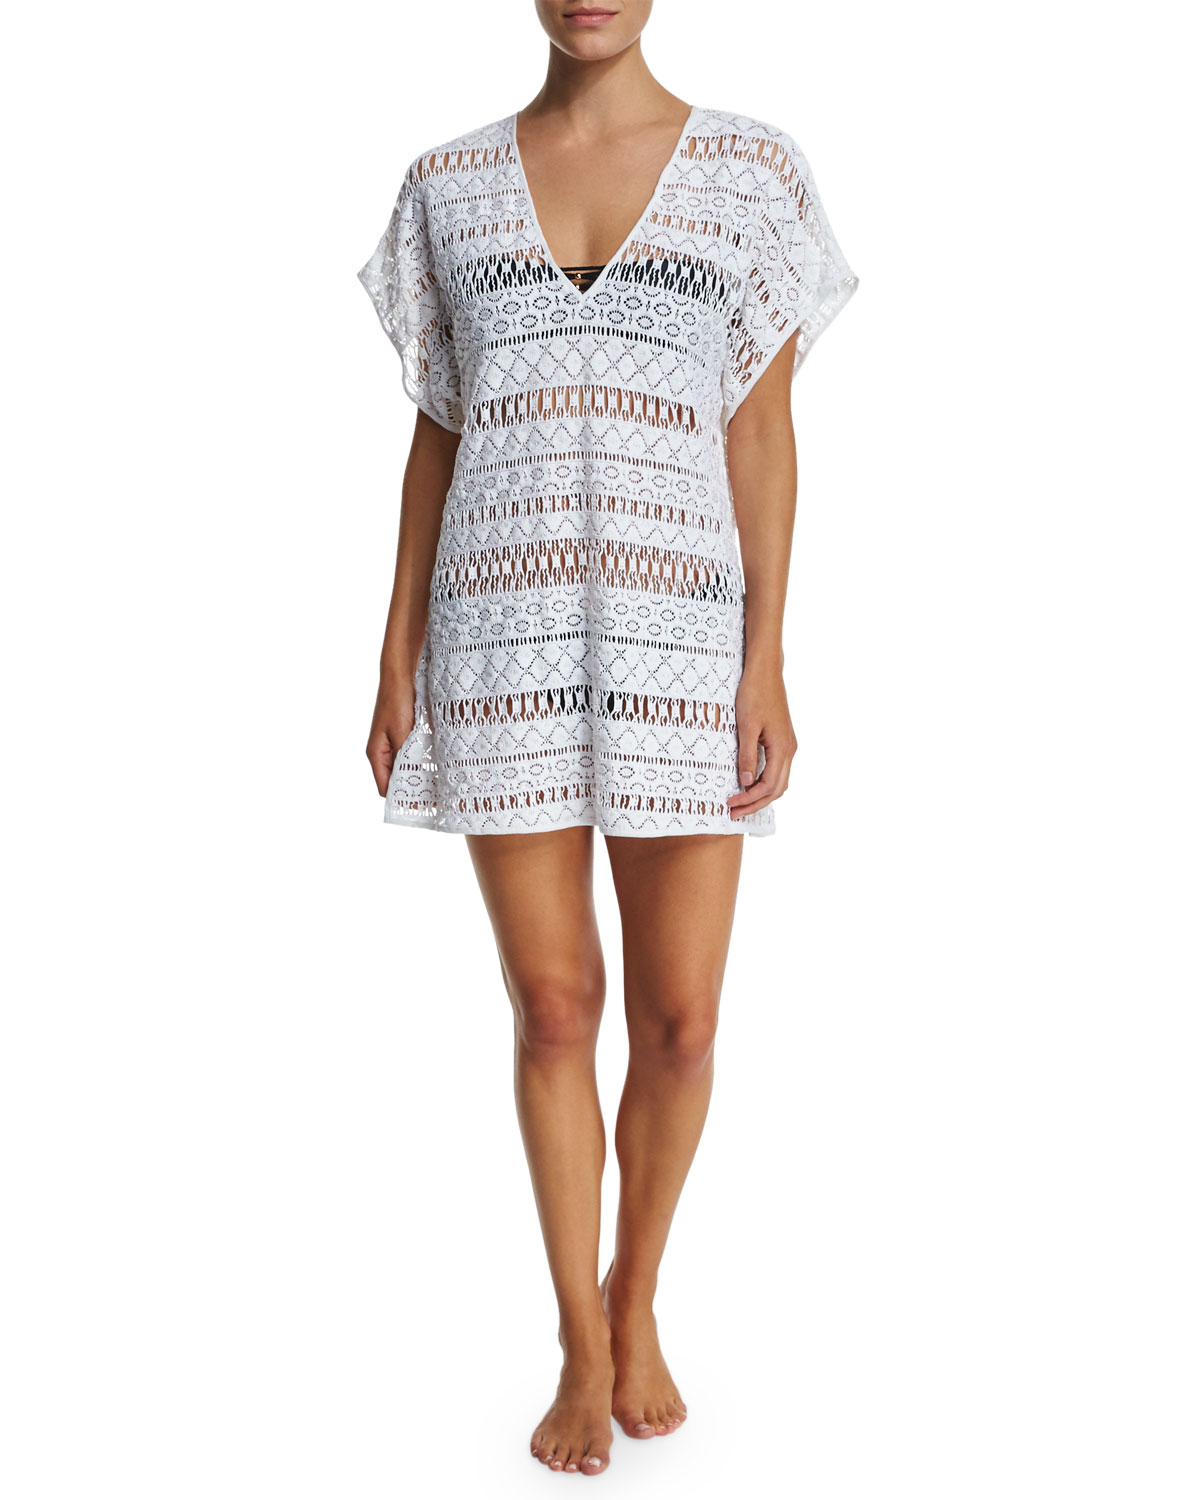 Eze Crocheted Coverup Dress